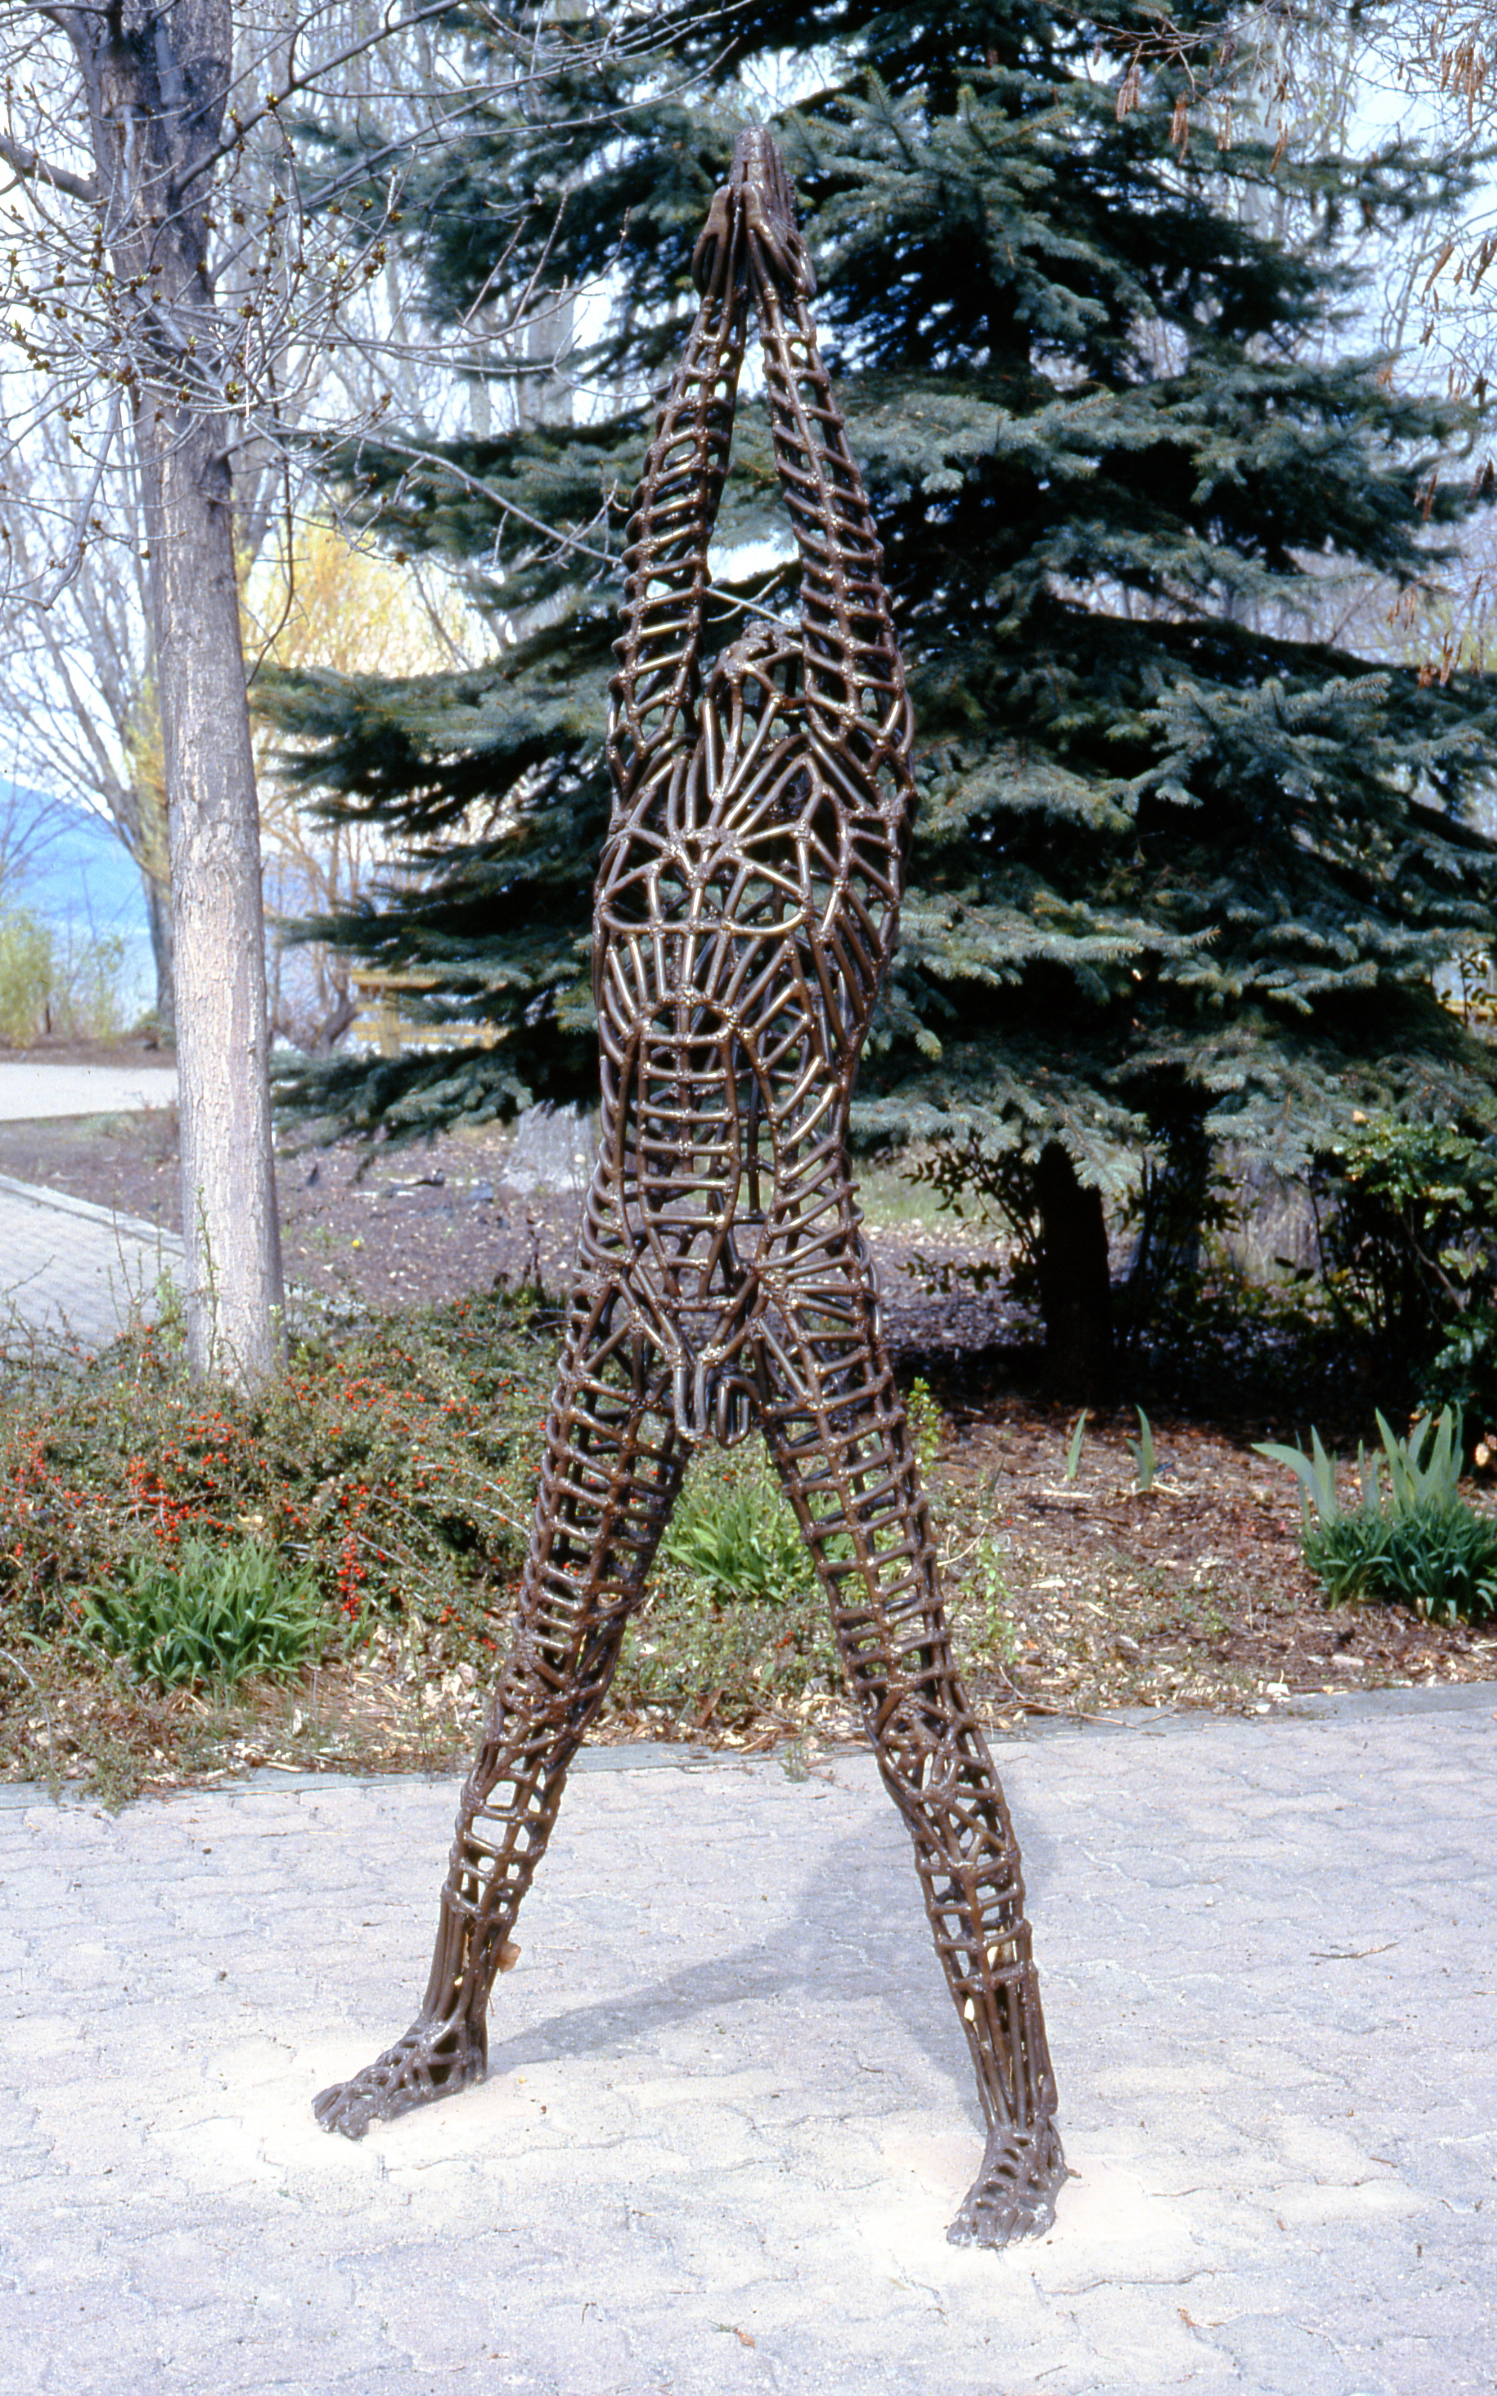 "Breaking Through,  1979, Aleta Shores (n. La France), welded steel, 90"" tall, 2001. 03.01. Gift of Dr. Elliot & Loretta Phillips."